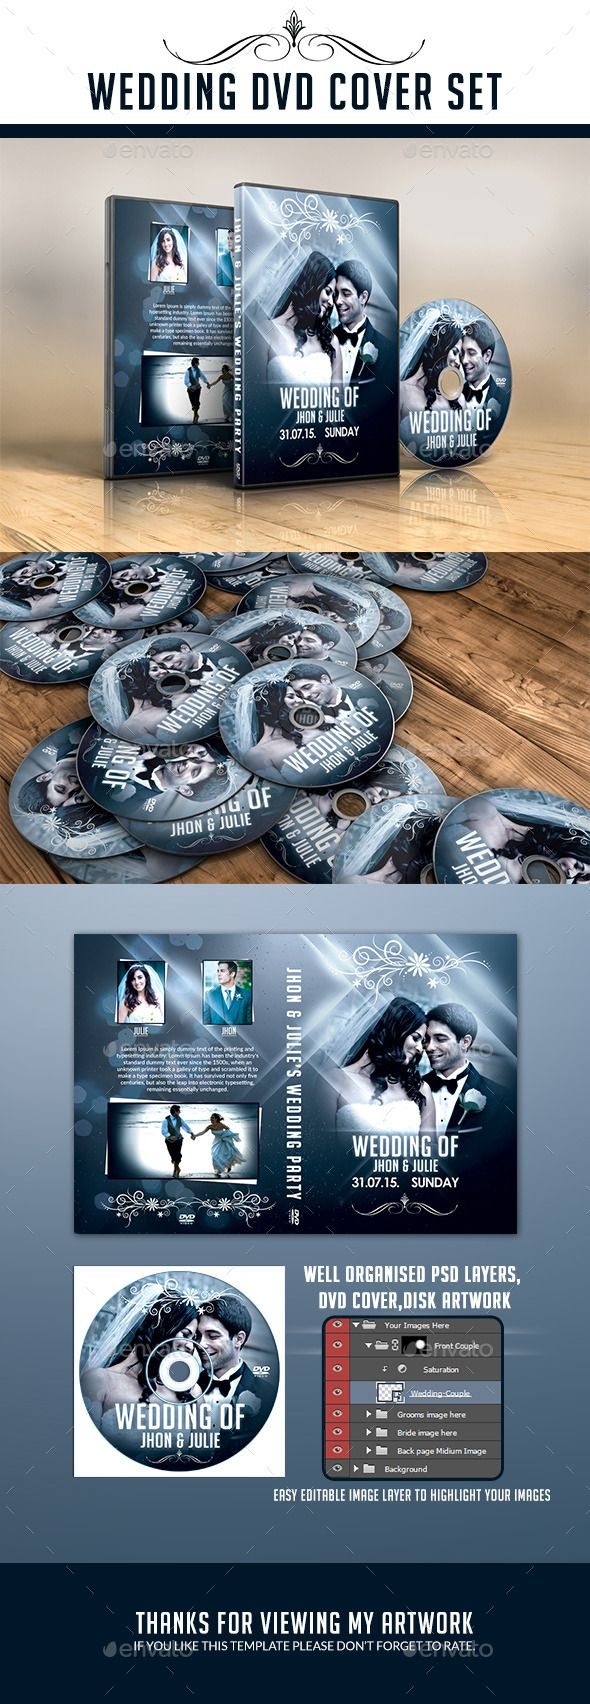 9 best images about cd and dvd artwork cover templates designs on